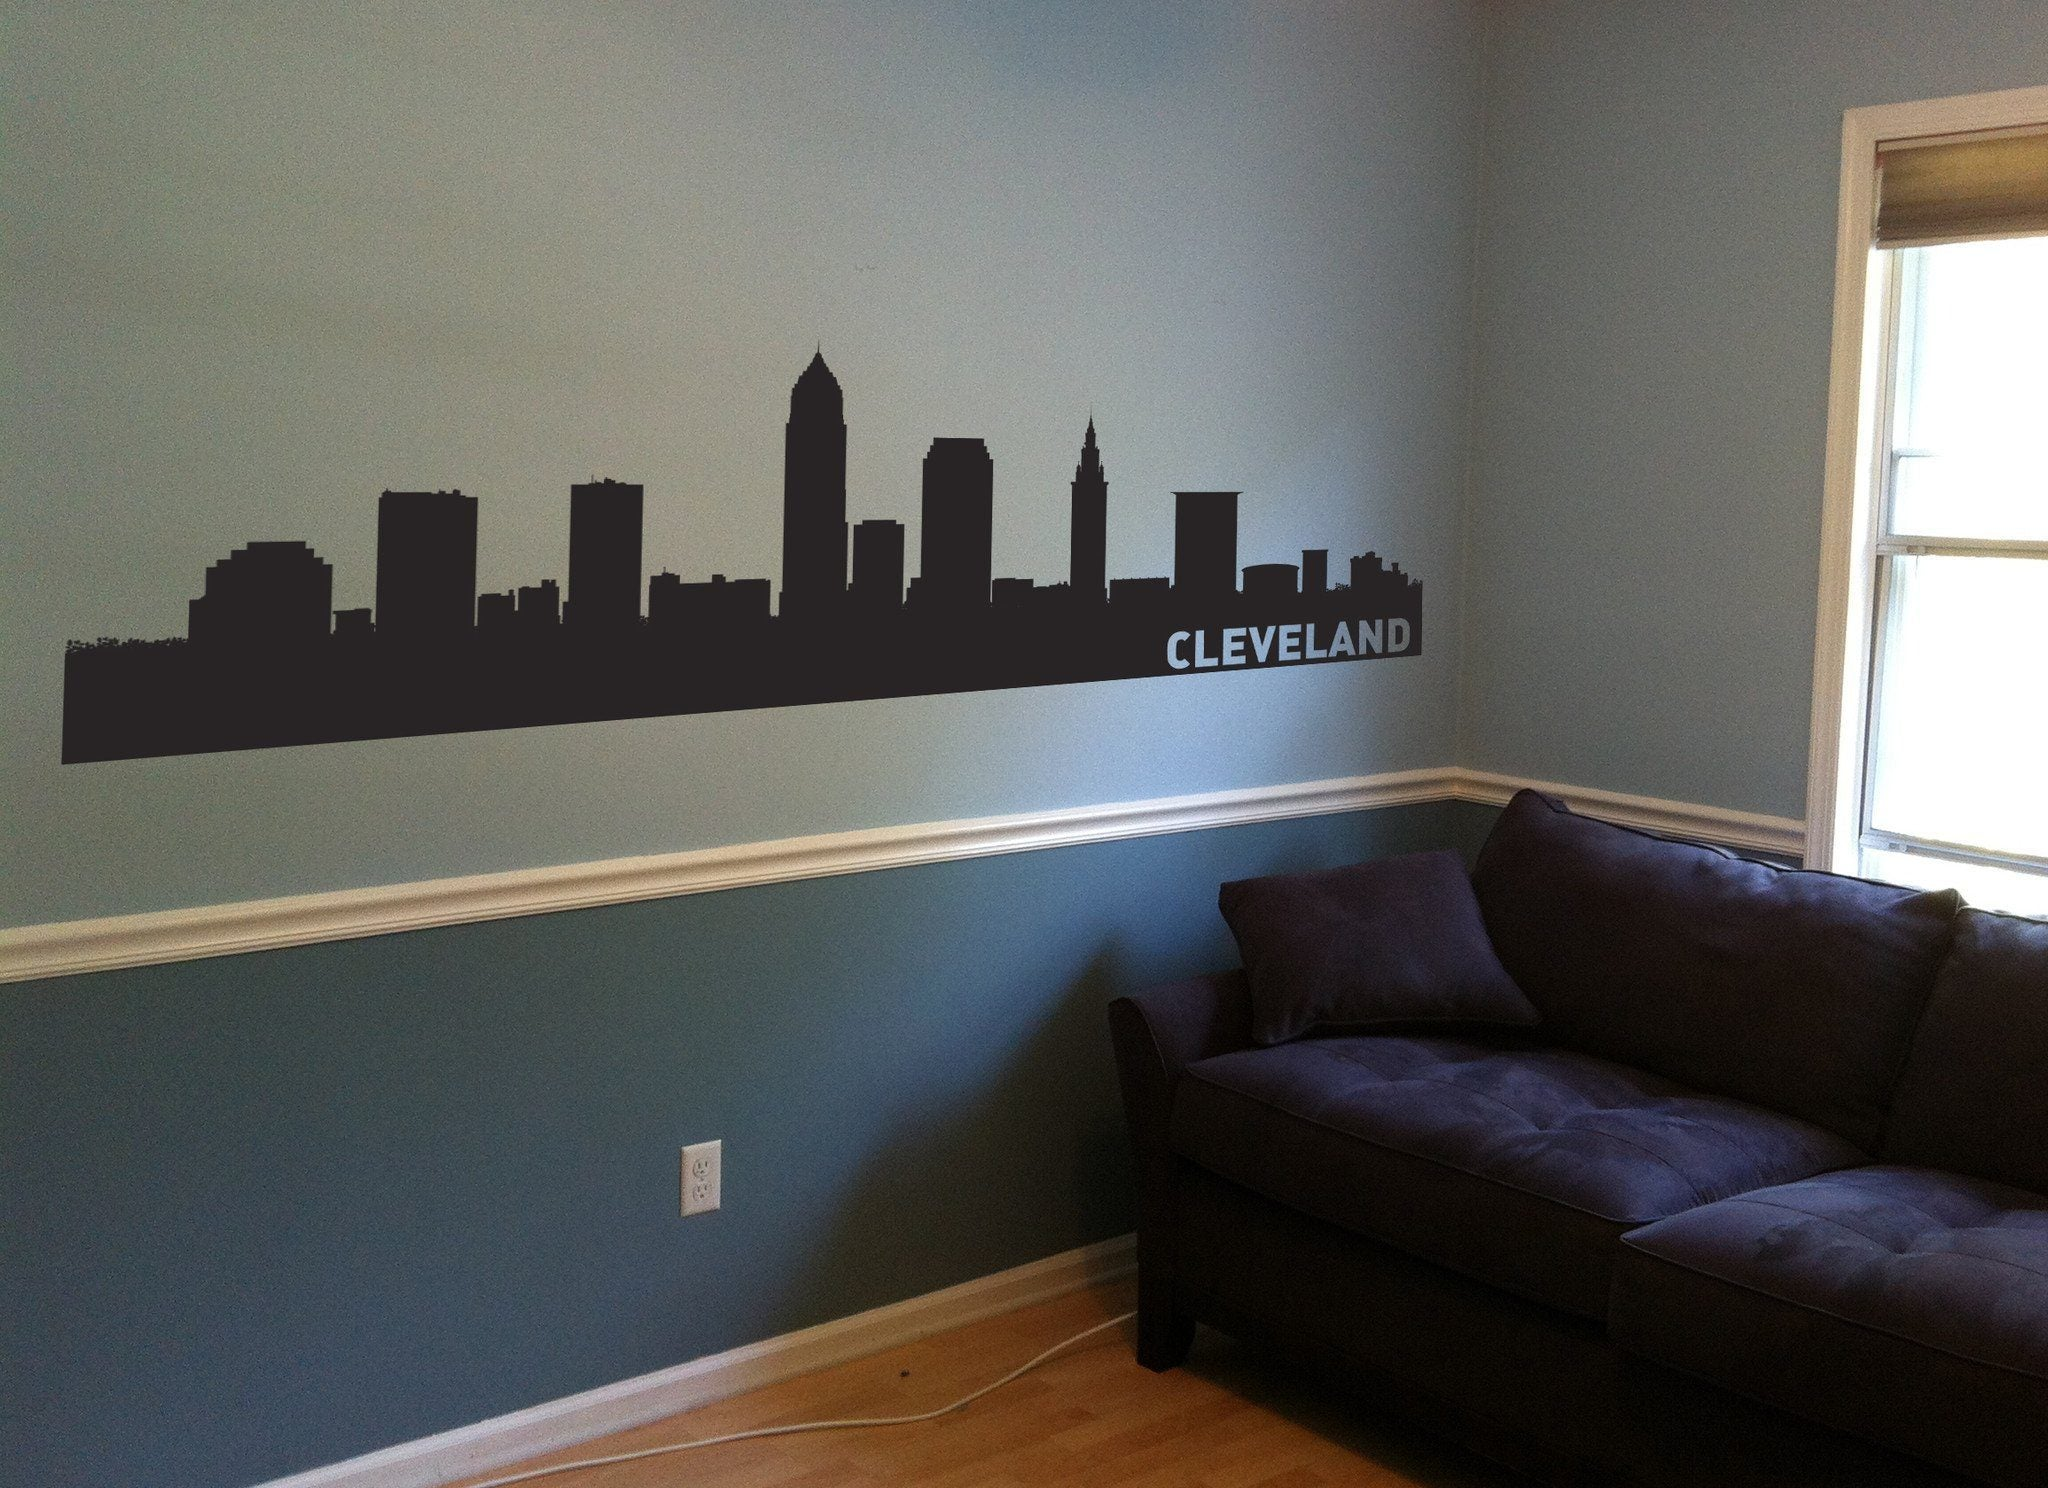 Cleveland Ohio Skyline Vinyl Wall Decal The Personalized Gift Co - Custom vinyl decals cleveland ohio